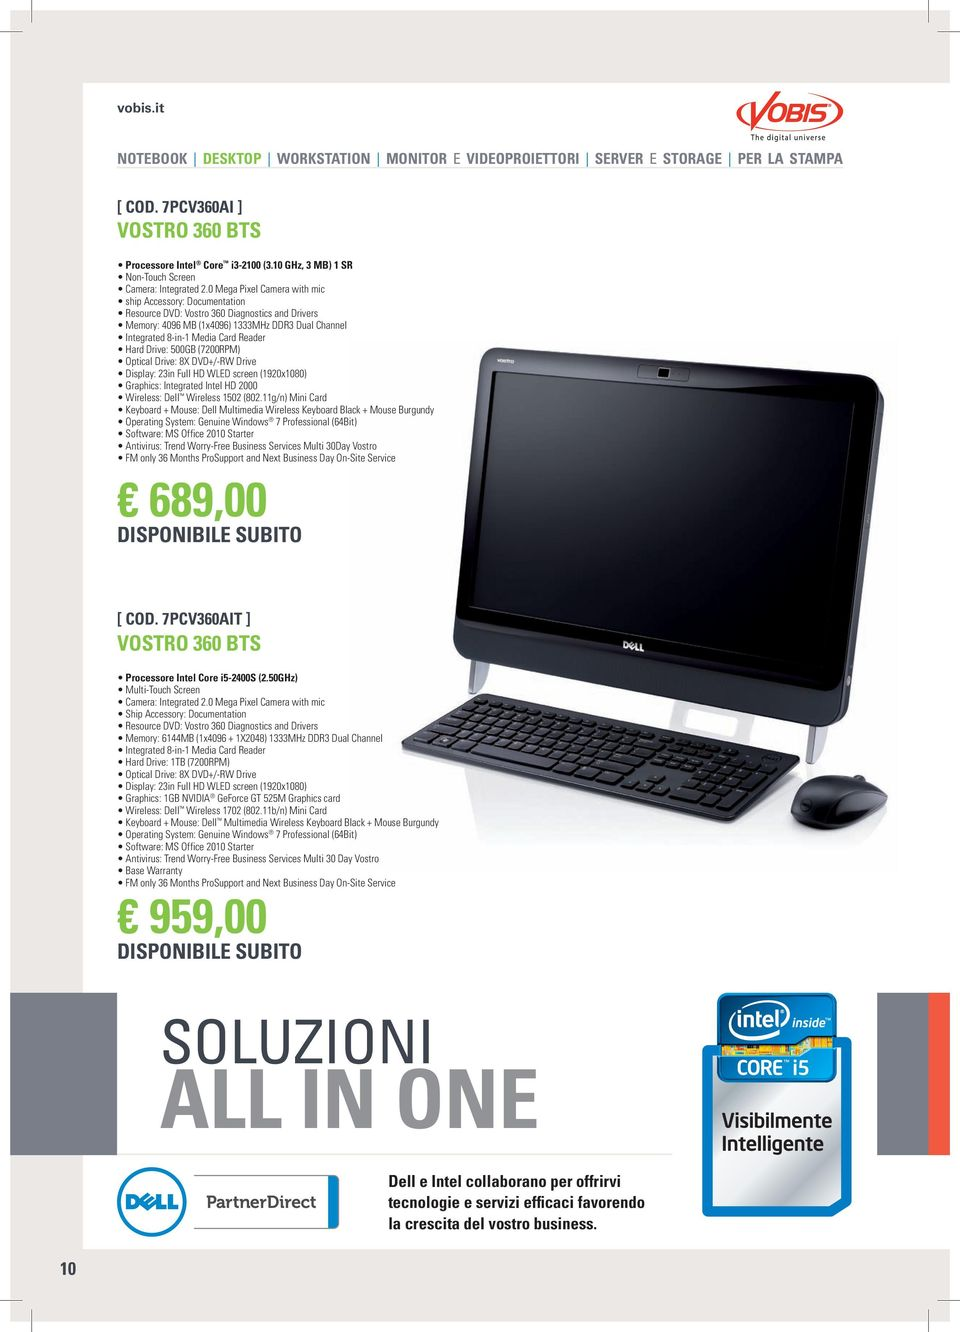 Drive: 500GB (7200RPM) Optical Drive: 8X DVD+/-RW Drive Display: 23in Full HD WLED screen (1920x1080) Graphics: Integrated Intel HD 2000 Wireless: Dell Wireless 1502 (802.